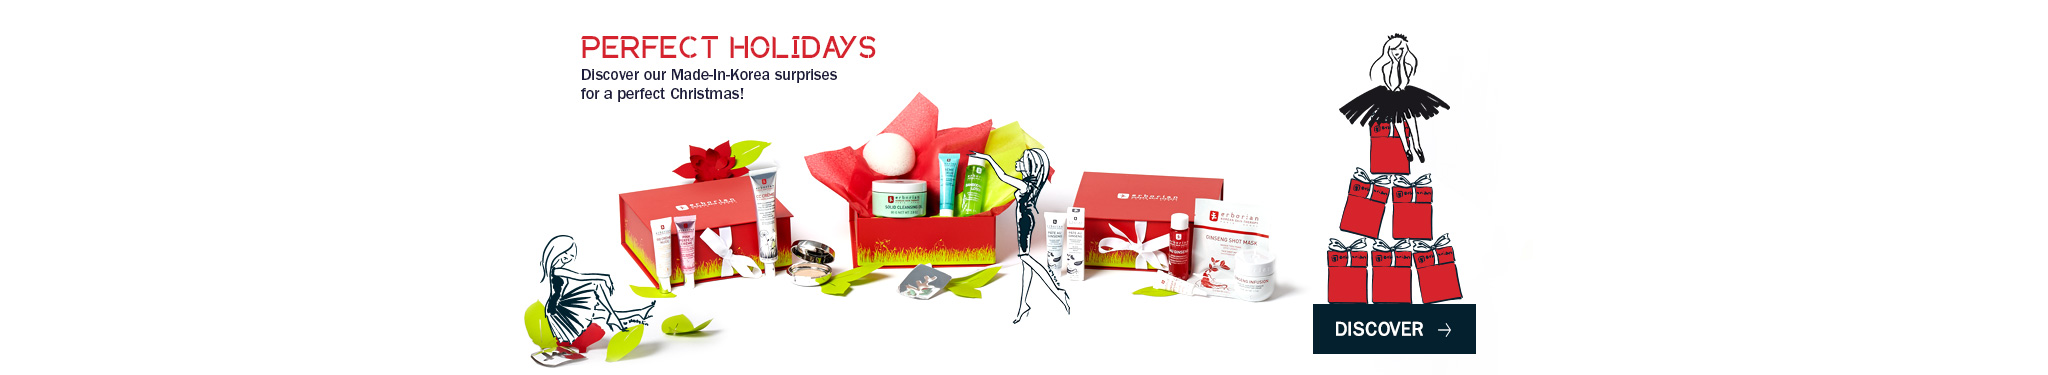 Korean Christmas for original and perfect gifts